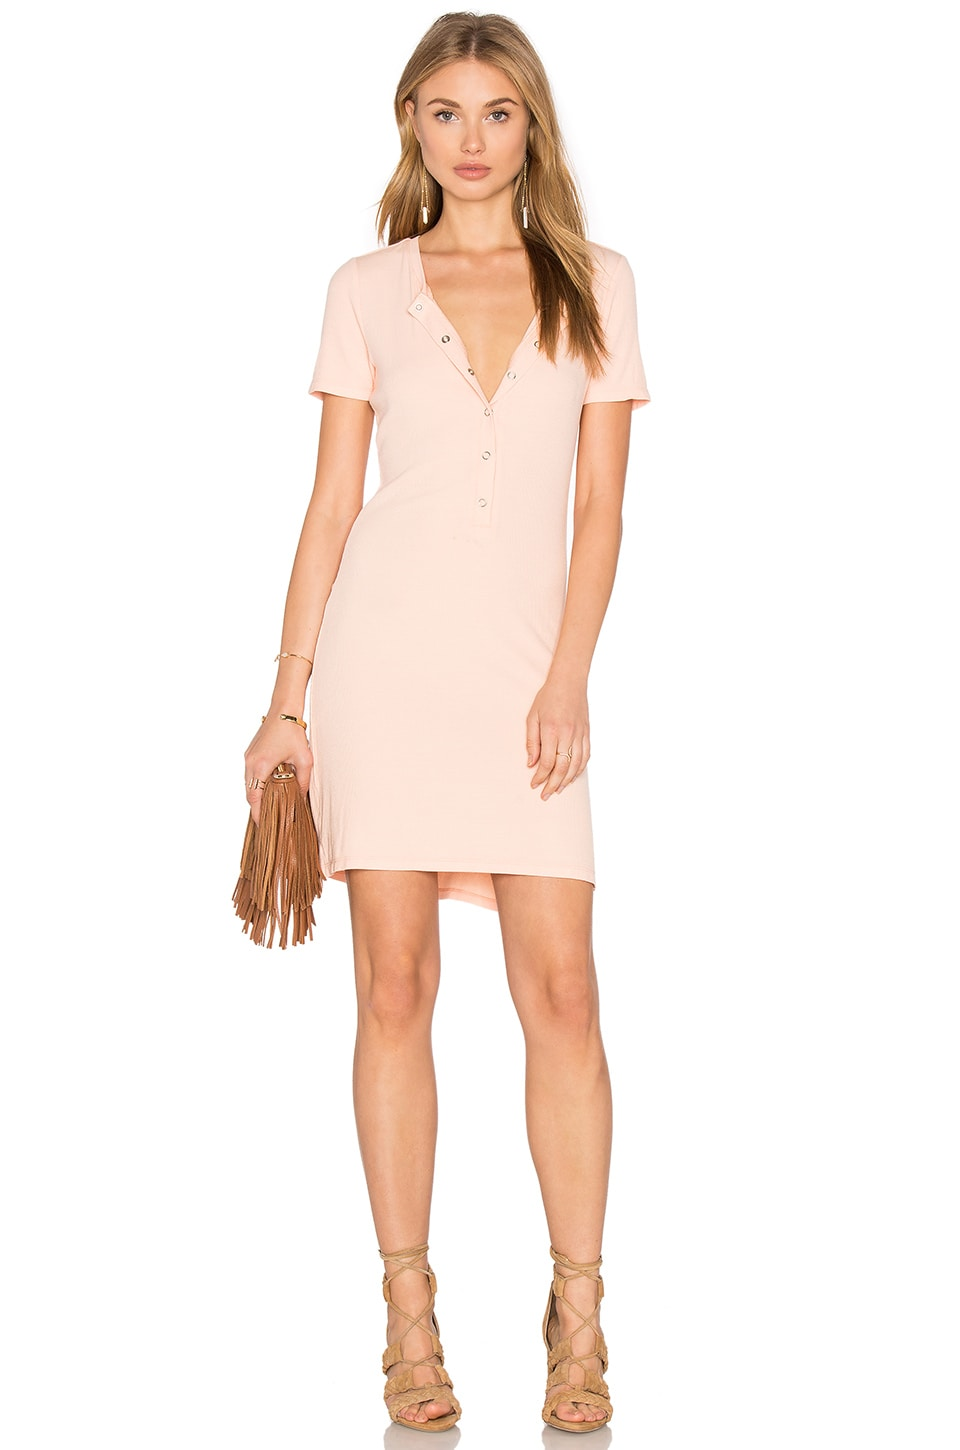 Privacy Please Travers Dress in Pale Pink